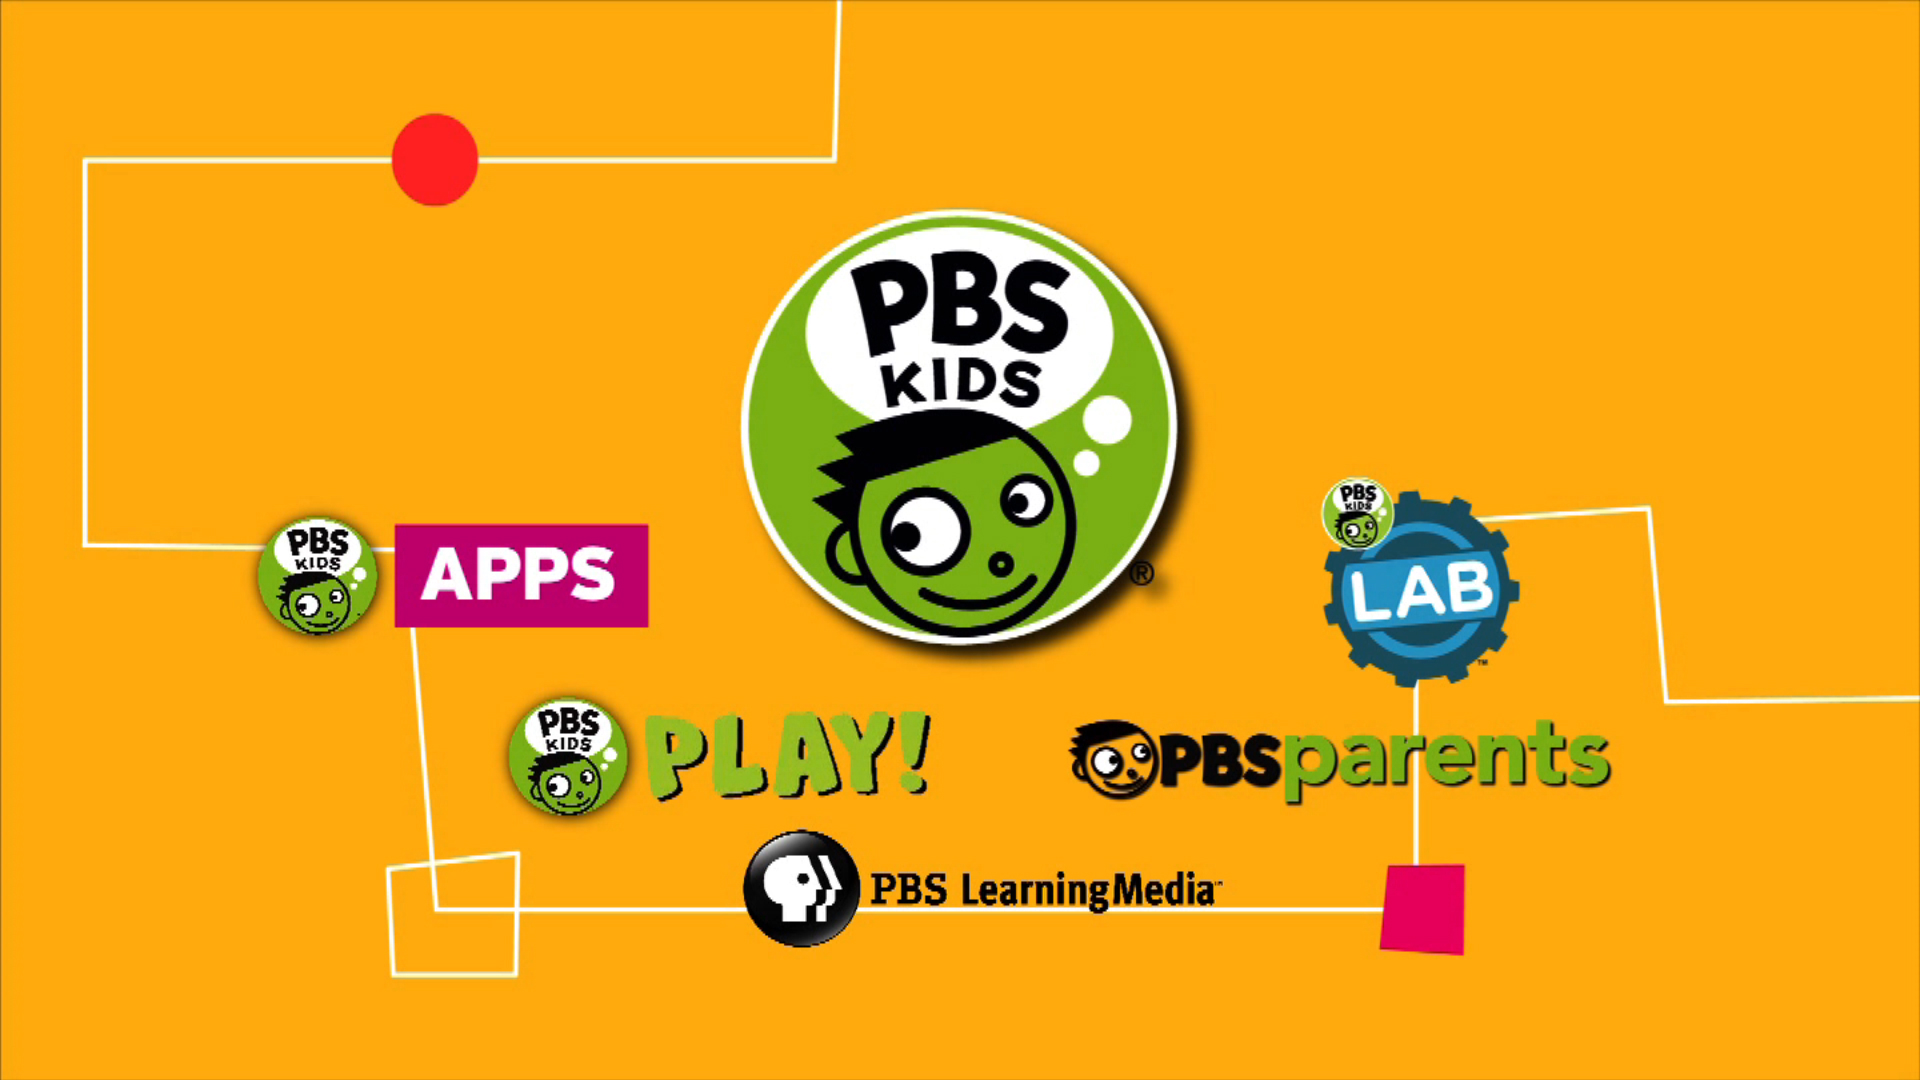 What are PBS Kids Apps?